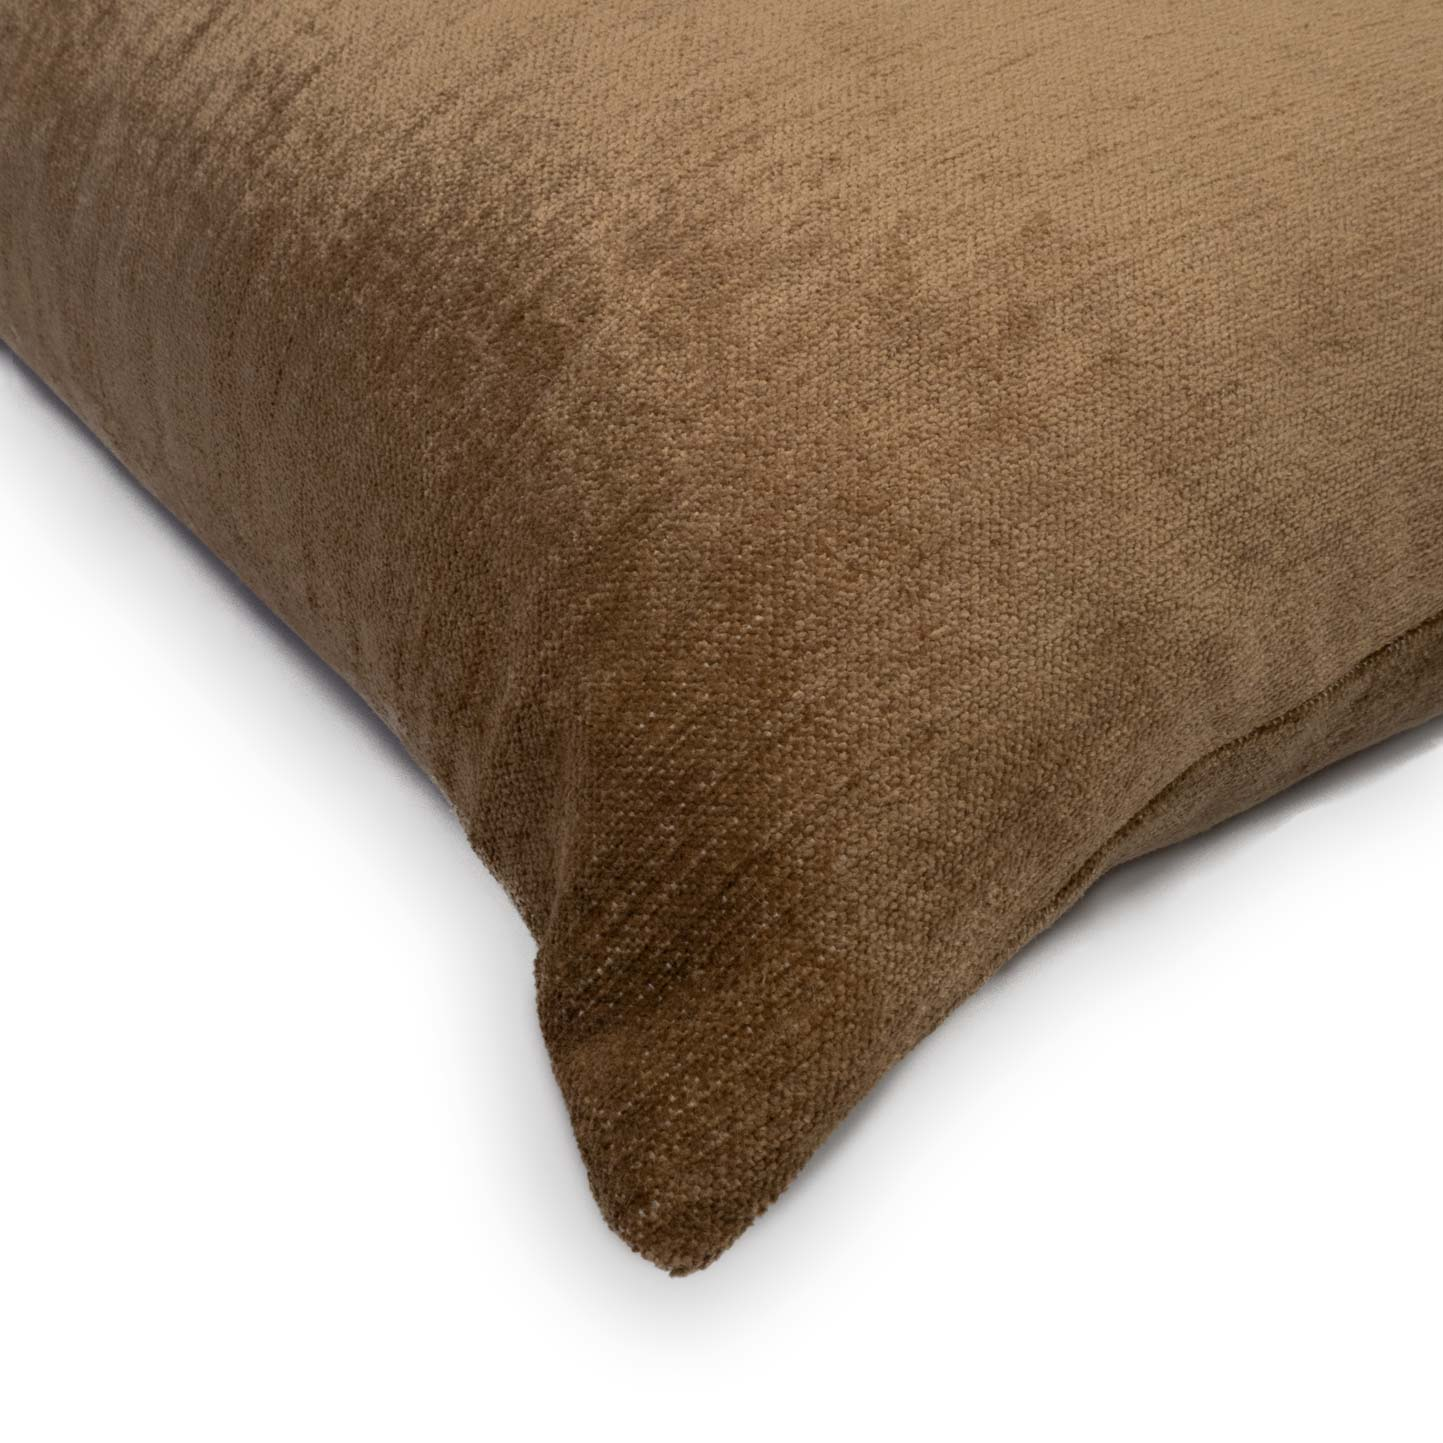 cushion-chicago-gold-side